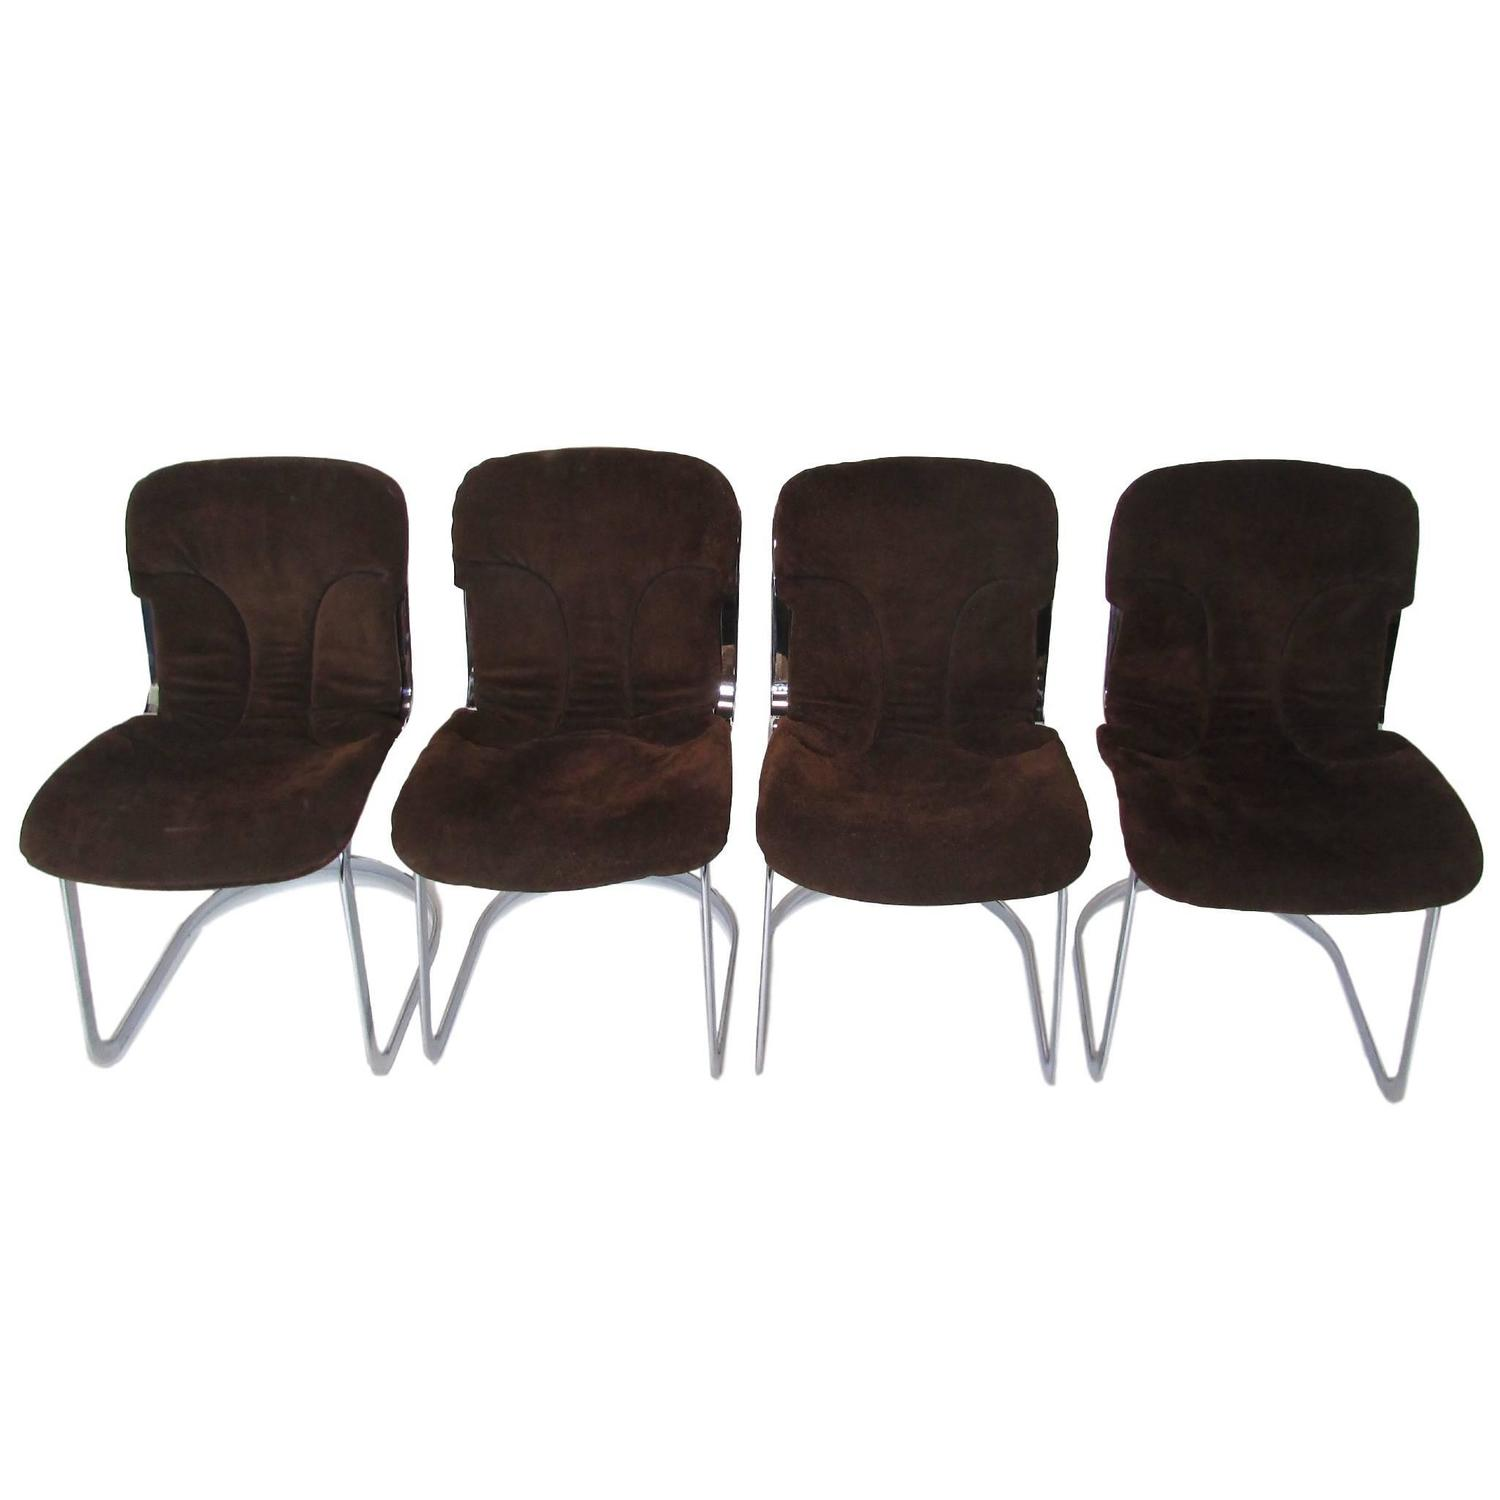 chrome and chocolate suede italian dining chairs for sale at 1stdibs